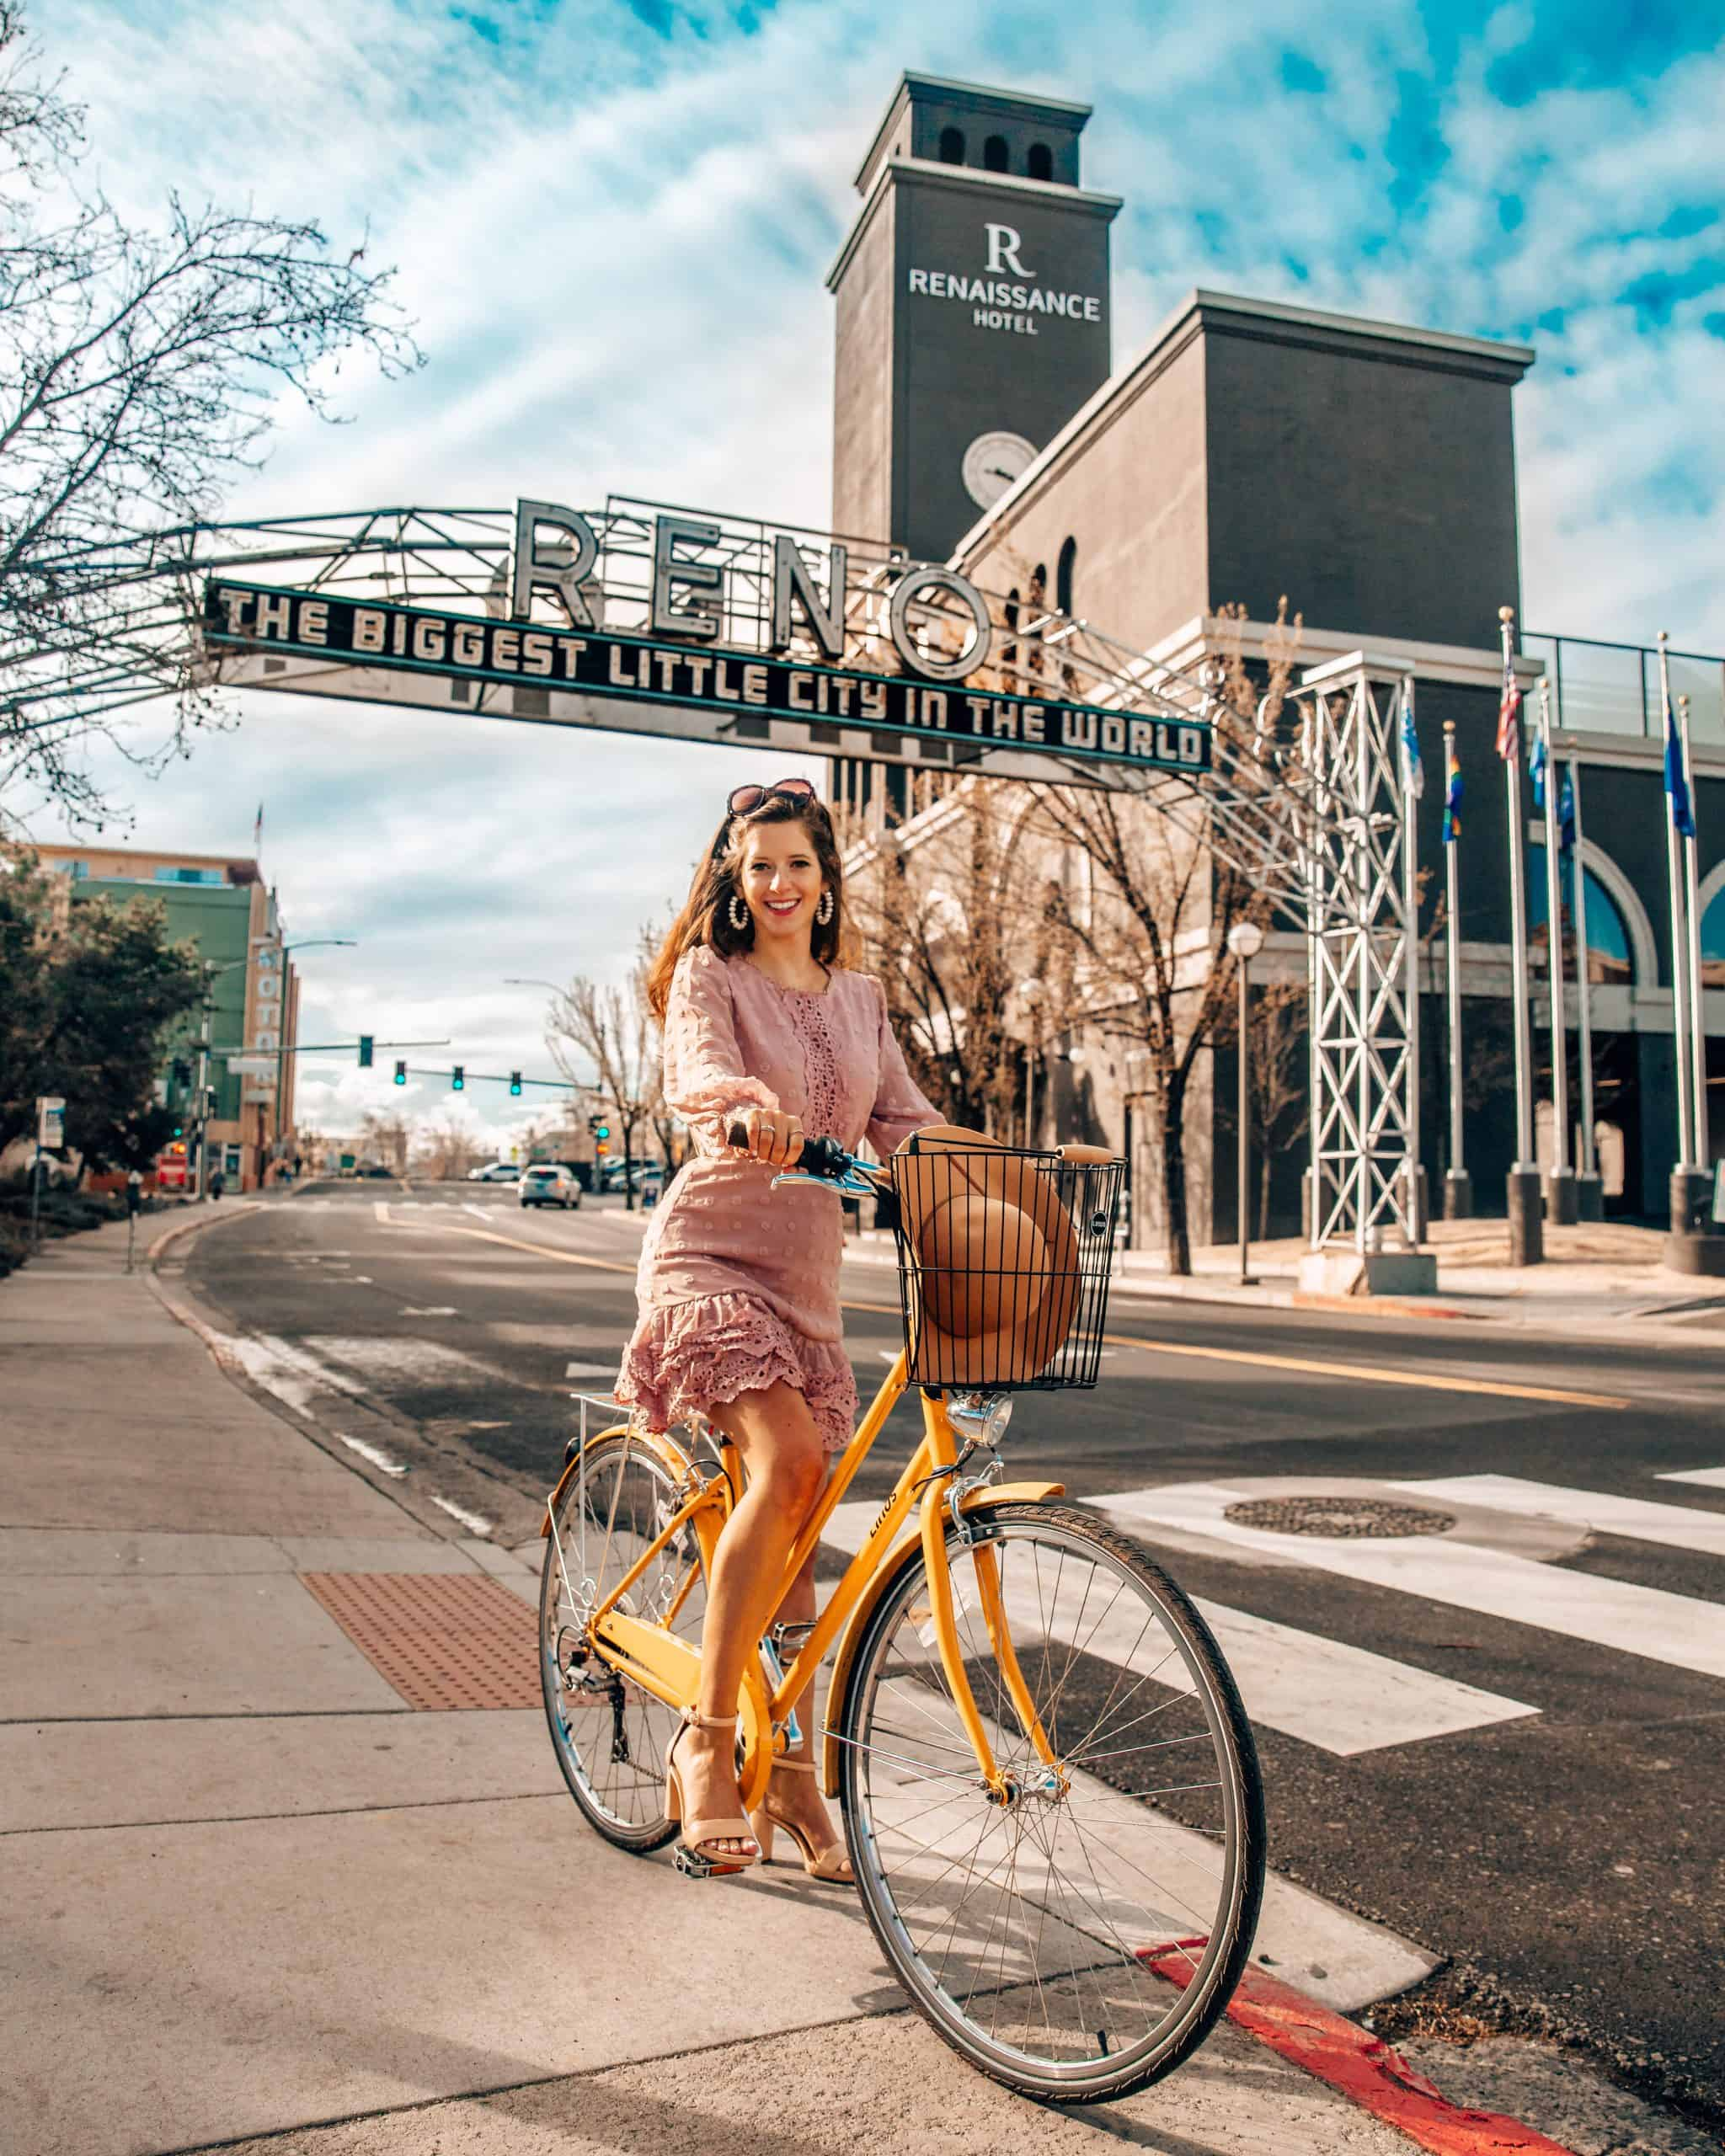 Bettina Biking under the Biggest Little City in the World Sign in Reno